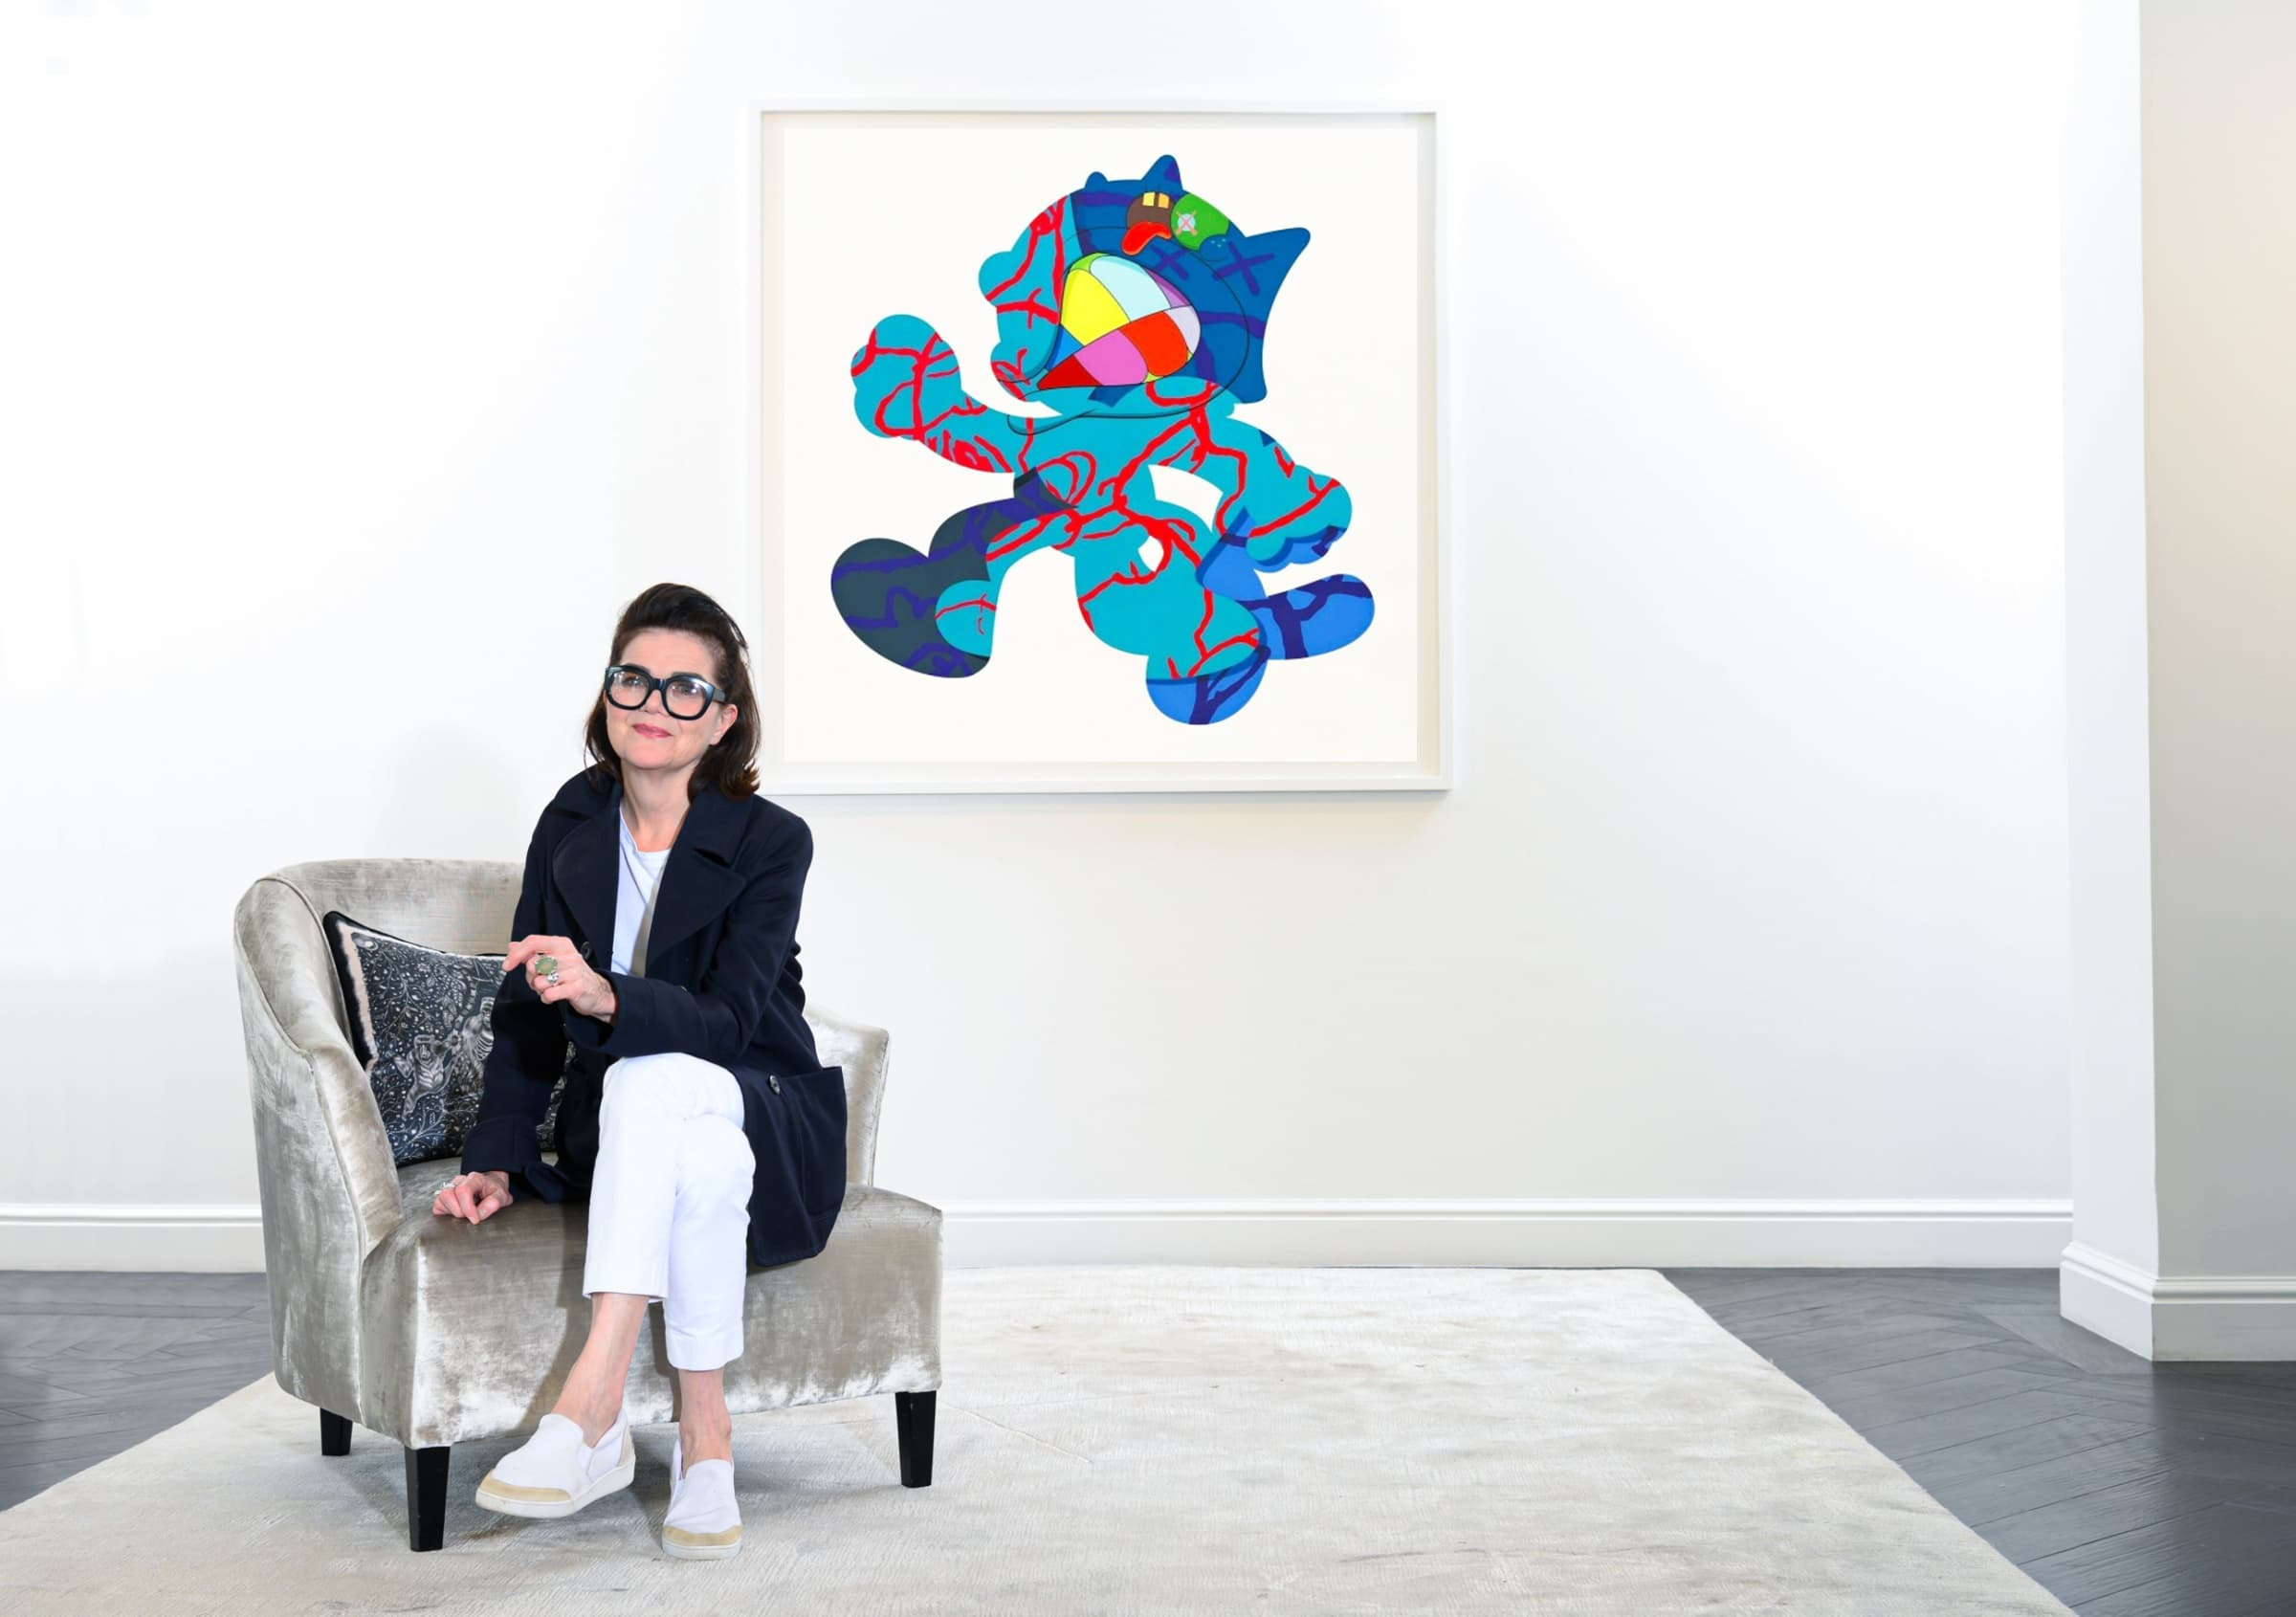 Maddox Artistic Director, Maeve Doyle on Why 2021 Is The Year of KAWS , We speak to Maeve Doyle about...